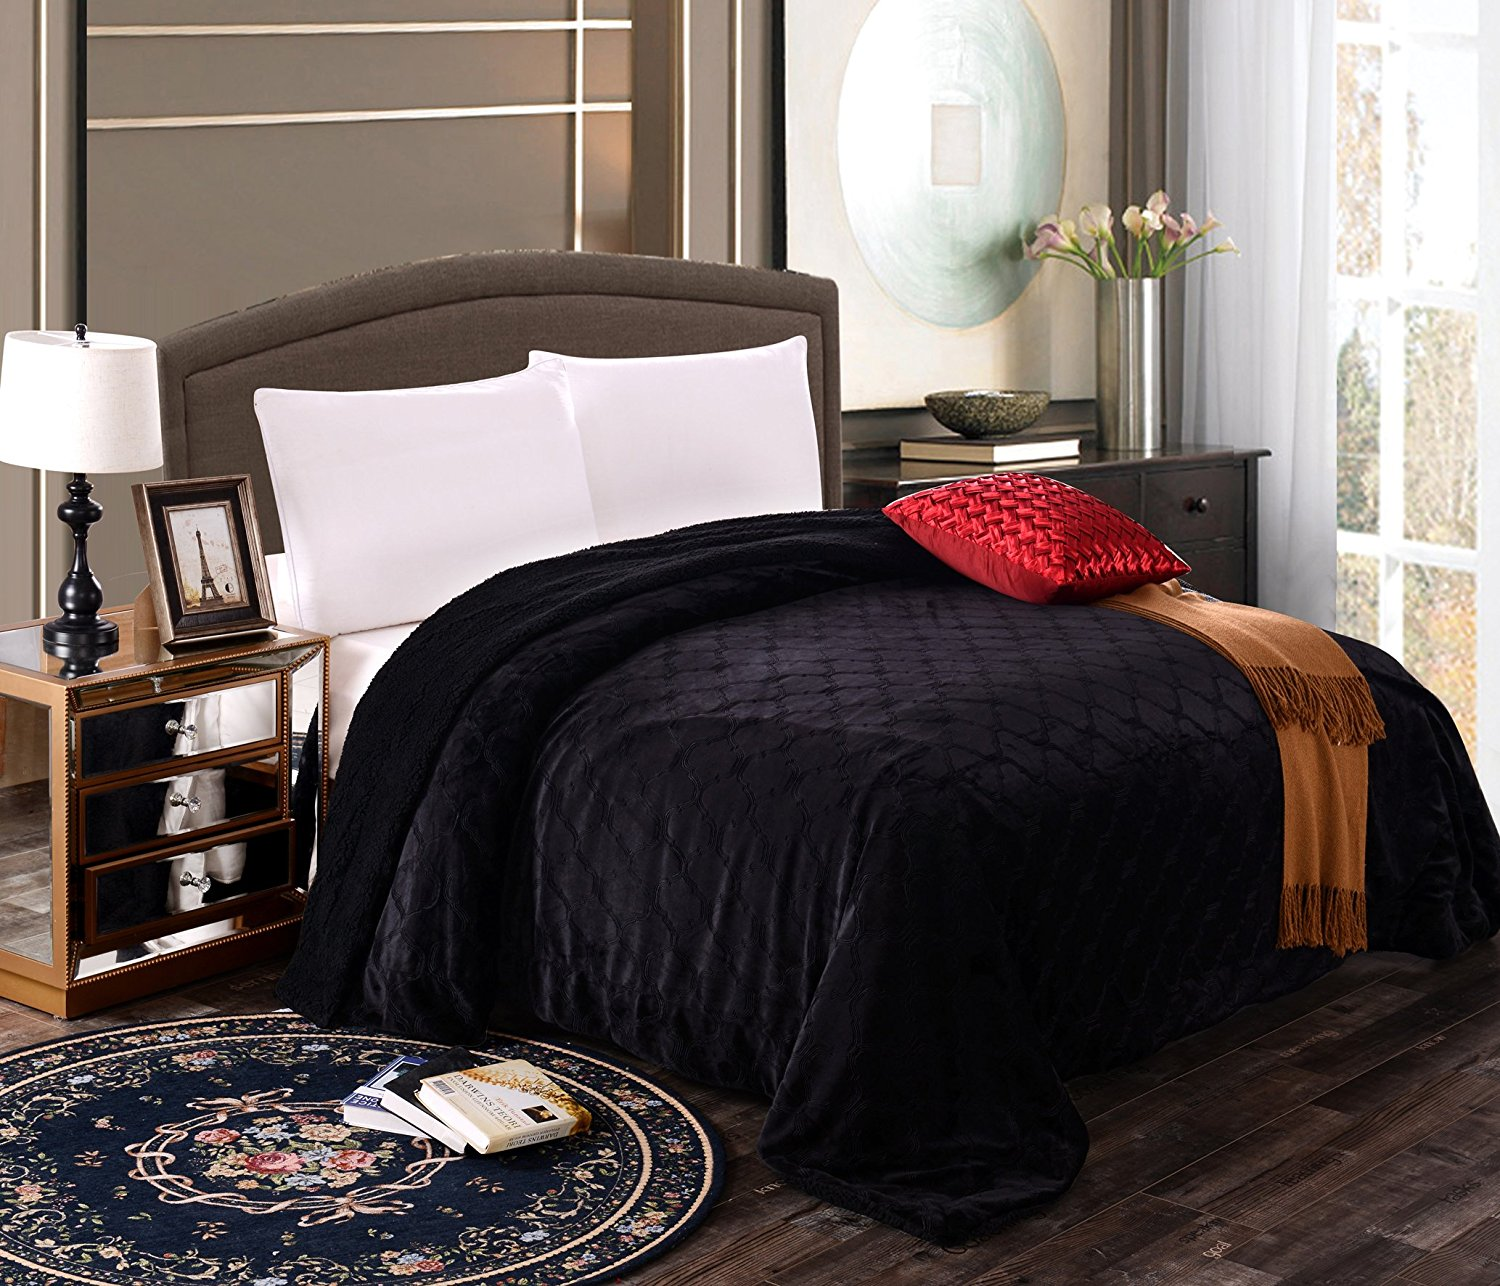 Fancy Collection Queen king Size Embossed Blanket Sumptuously Soft Plush Sollid Black with... by